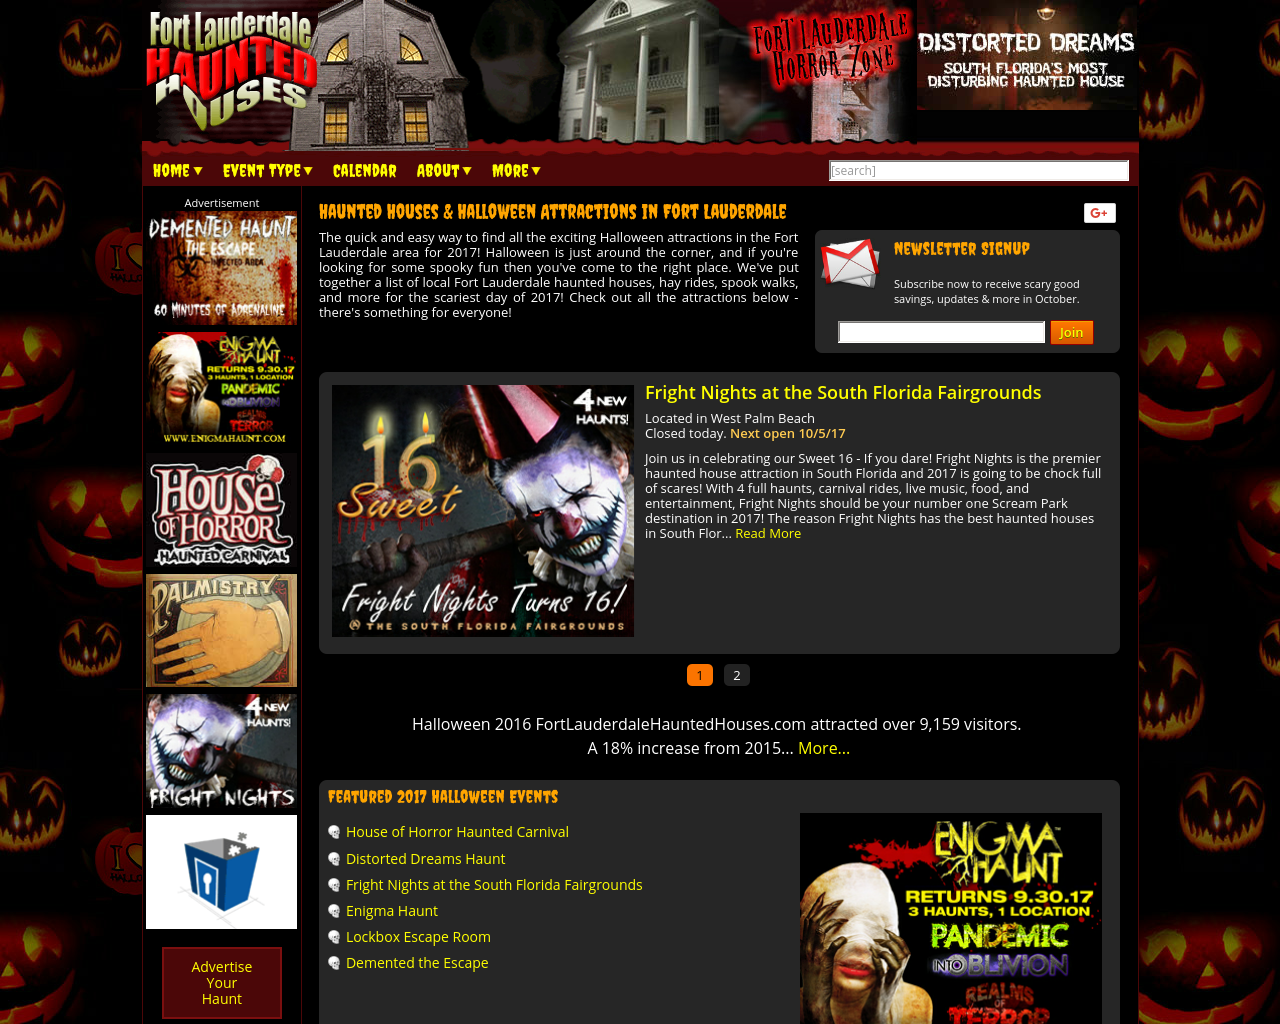 Fort-Lauderdale-Haunted-Houses-Advertising-Reviews-Pricing